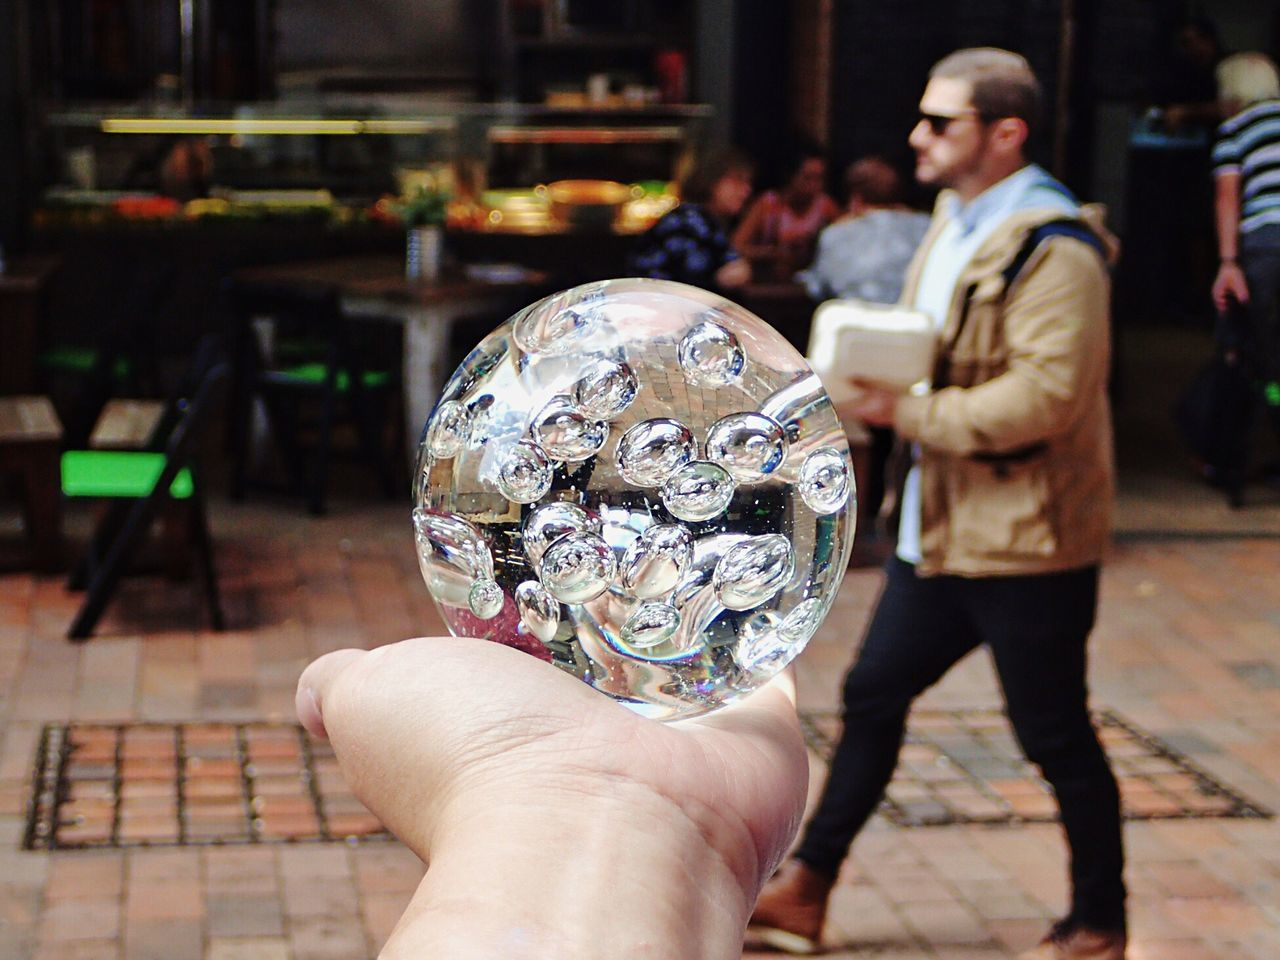 Close-Up Of Human Hand Holding Crystal Ball